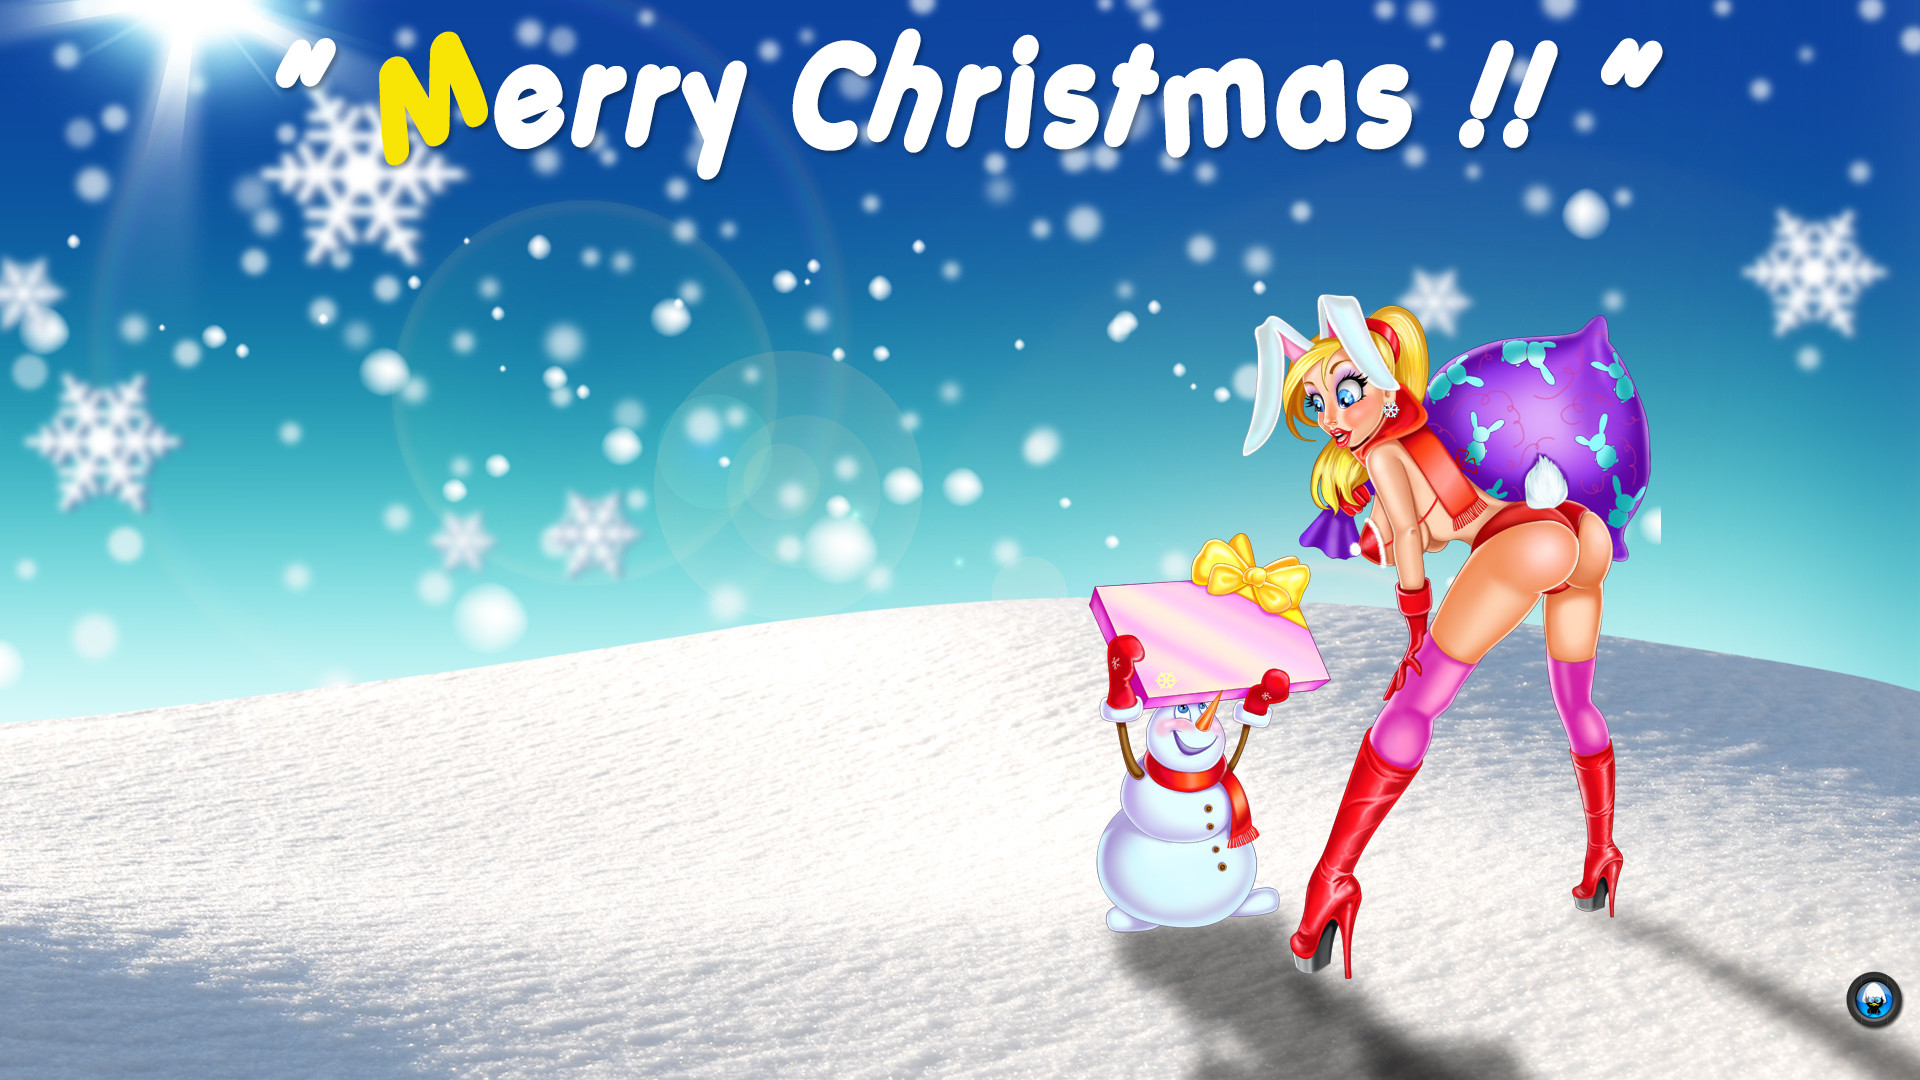 Res: 1920x1080, Merry Christmas wallpaper - hebus.org - High Definition Wallpapers .